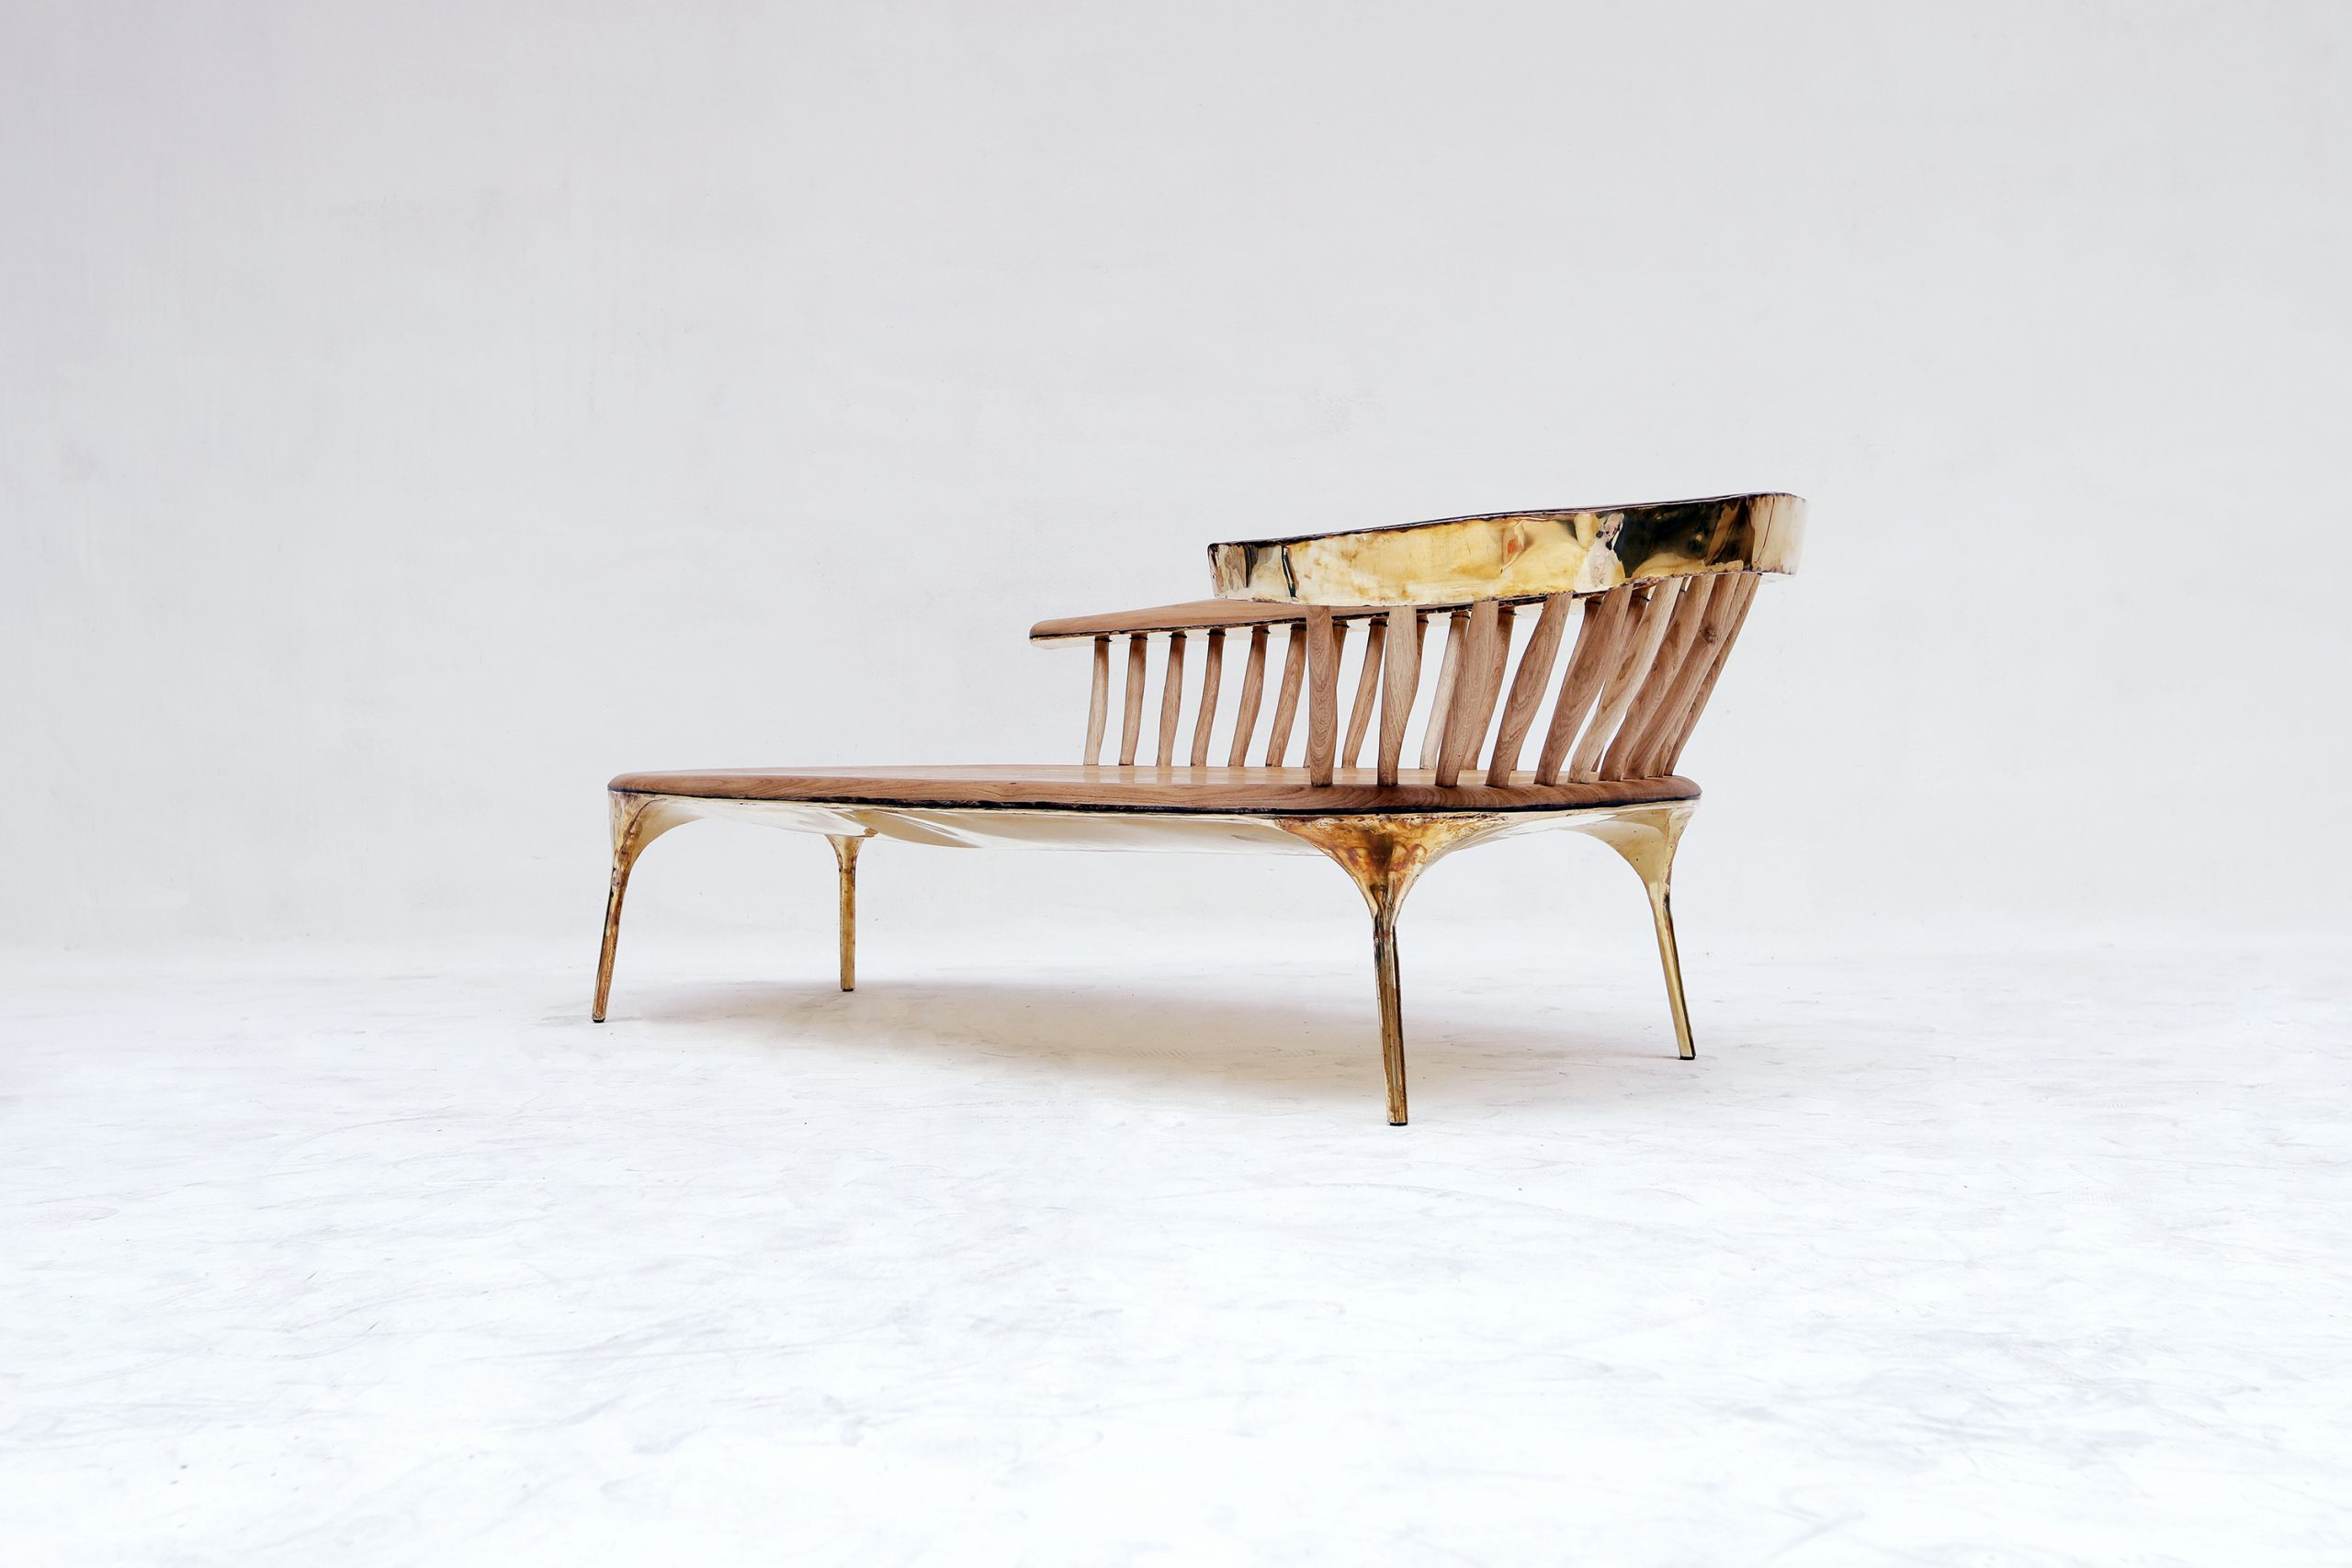 A bench with brass backing and wood seating